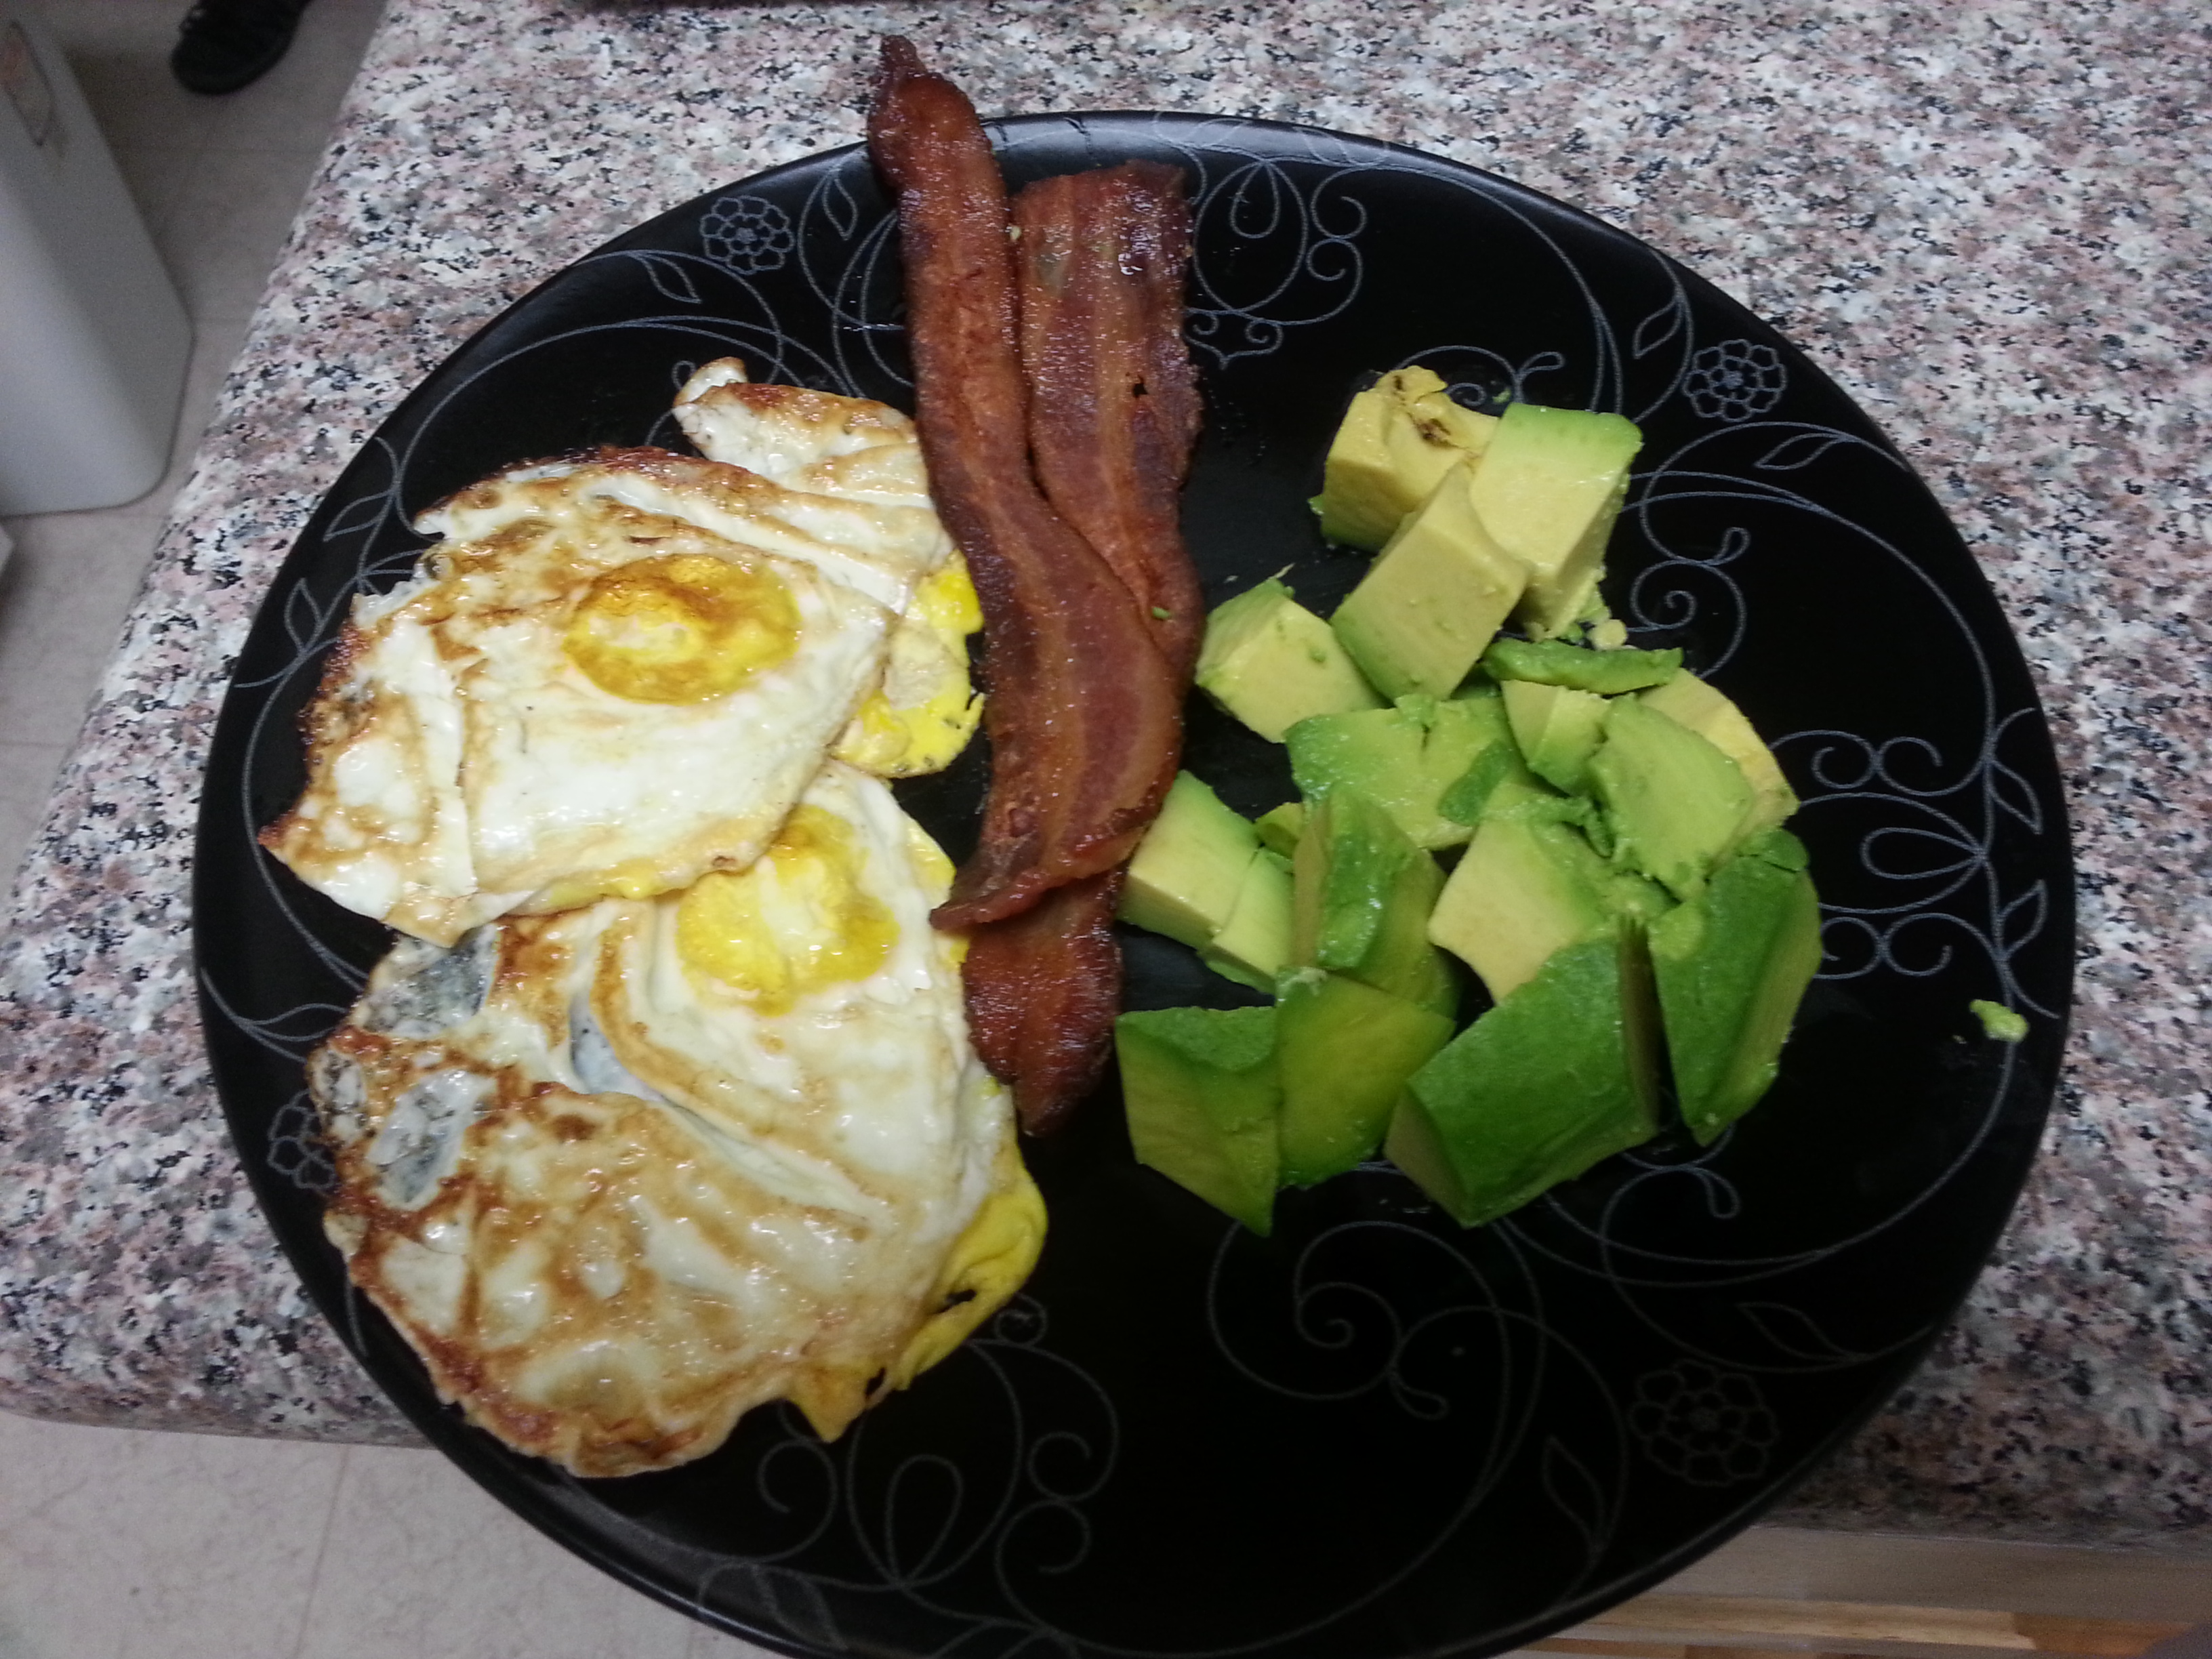 The amazingly delicious pre-ride breakfast: avocado, bacon and fried eggs!